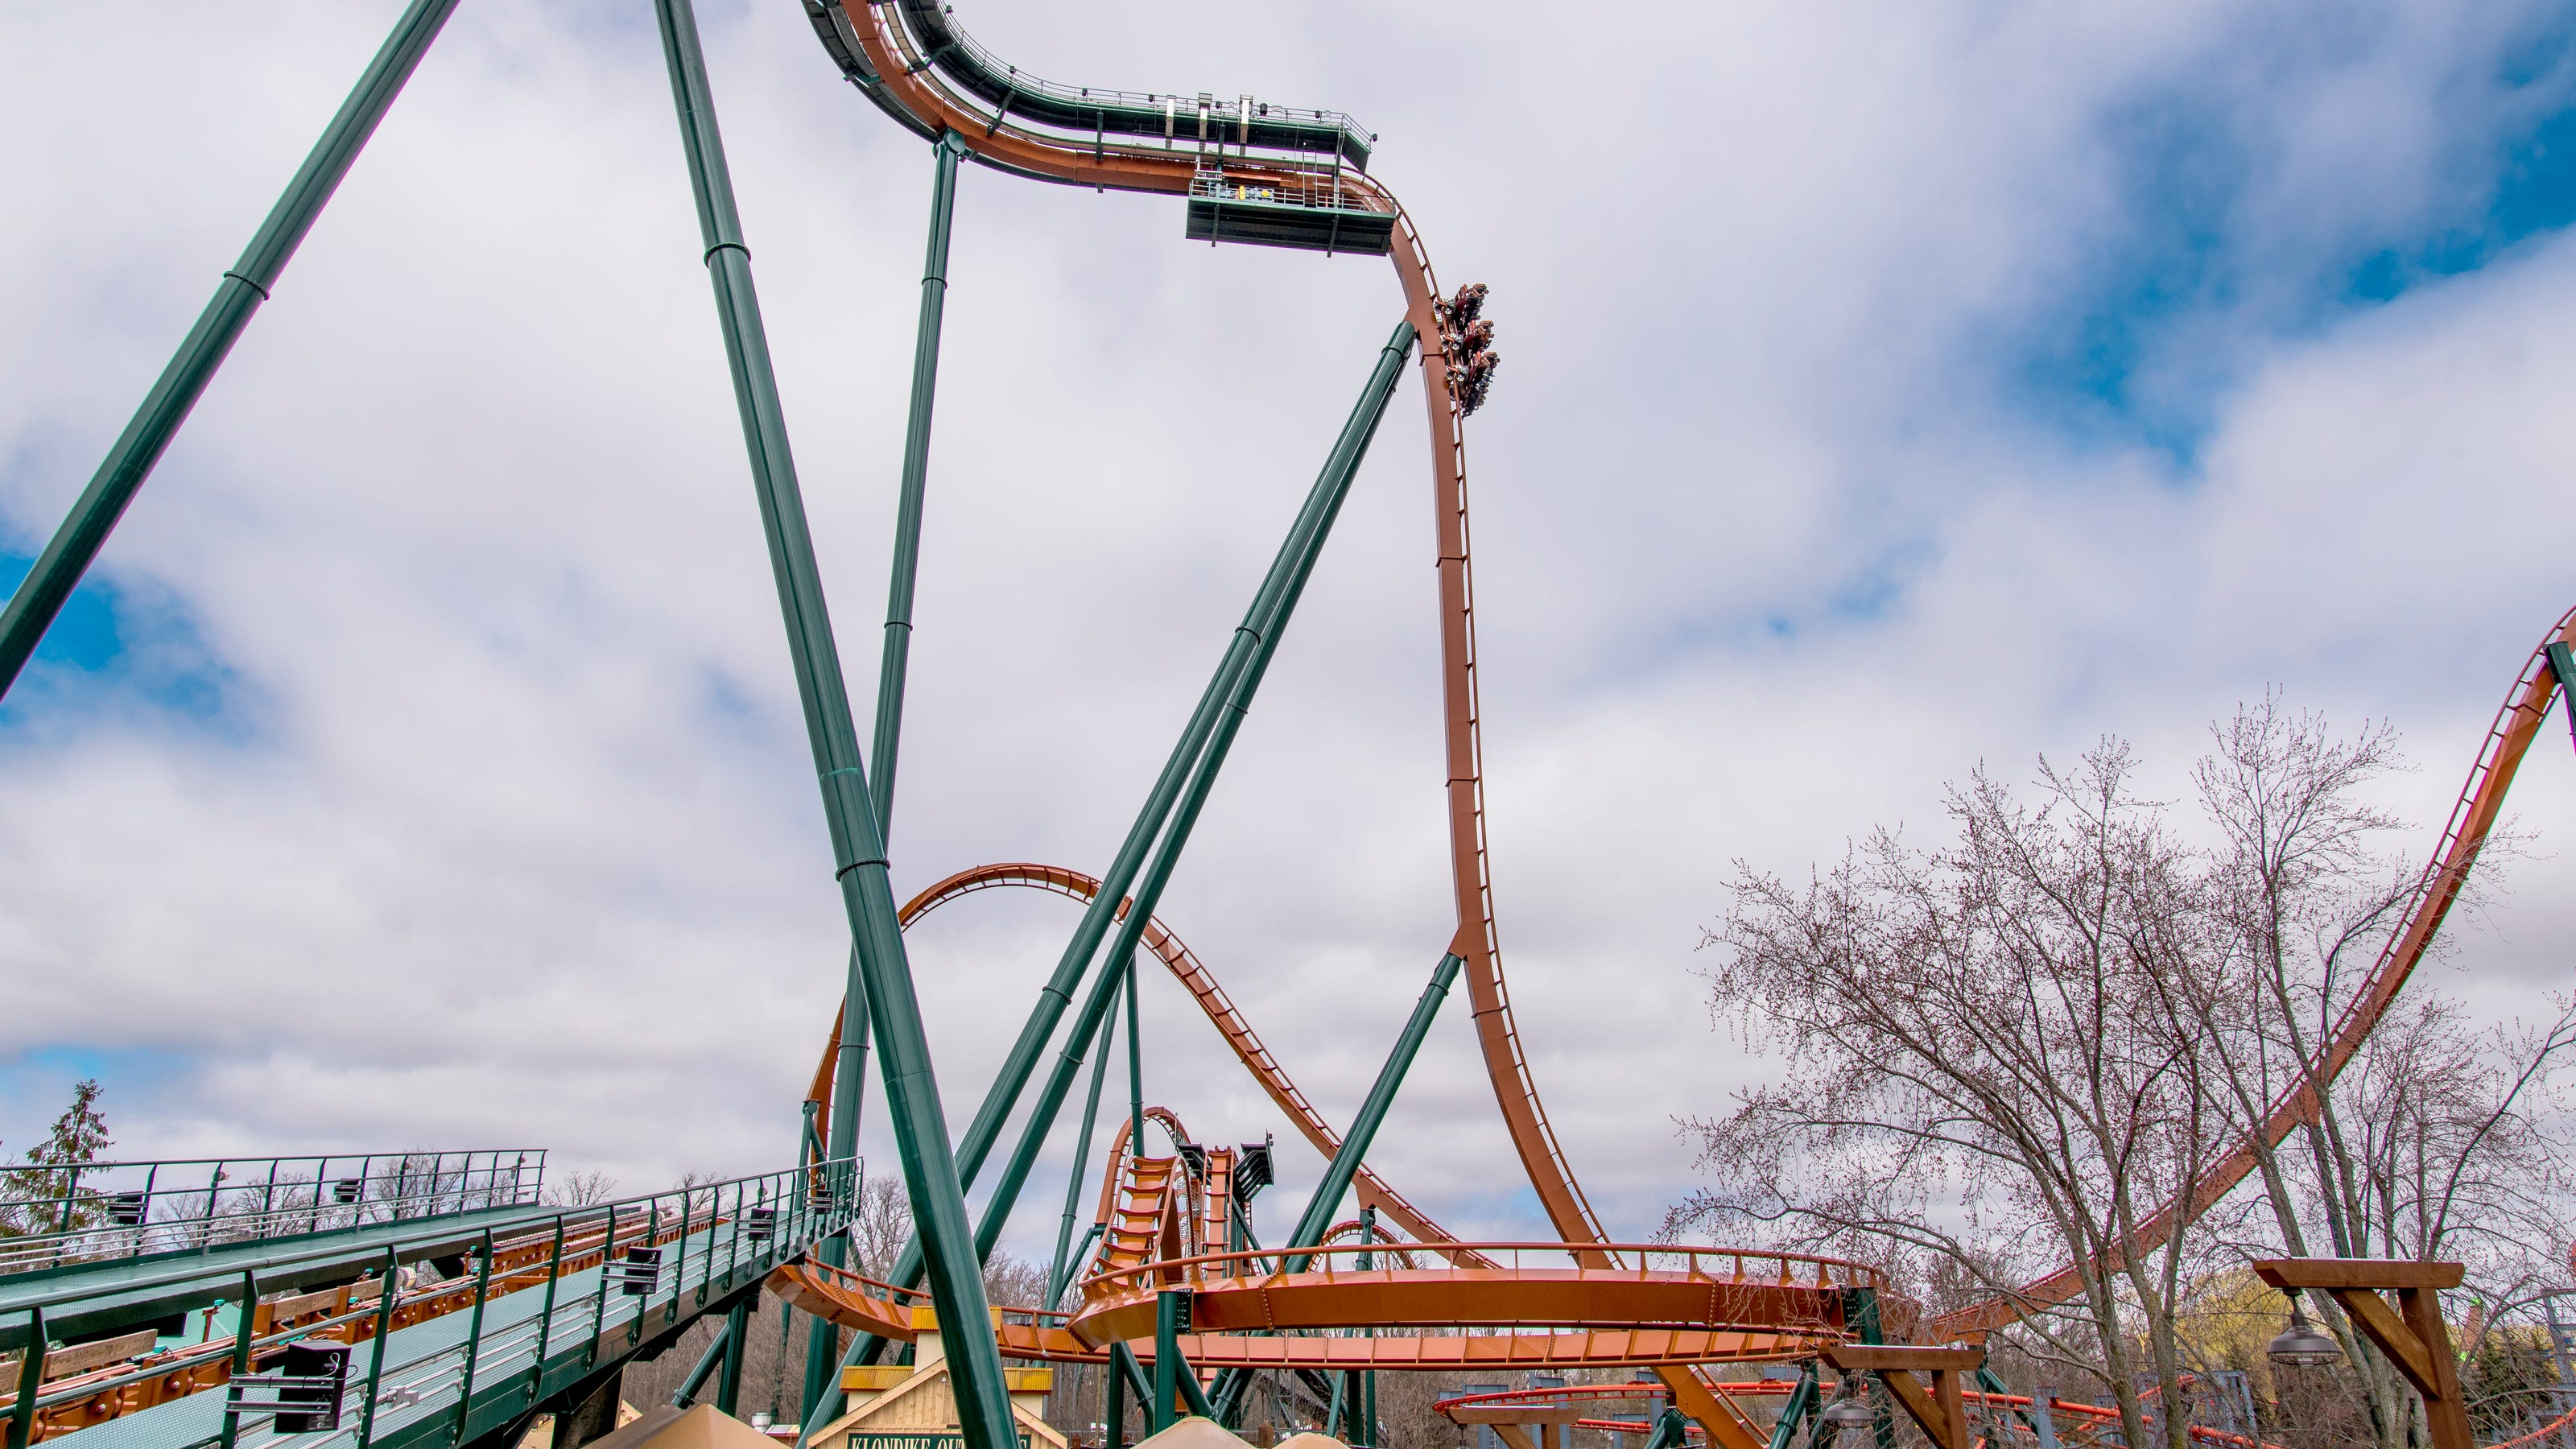 Yukon Striker roller coaster opens at Canada's Wonderland